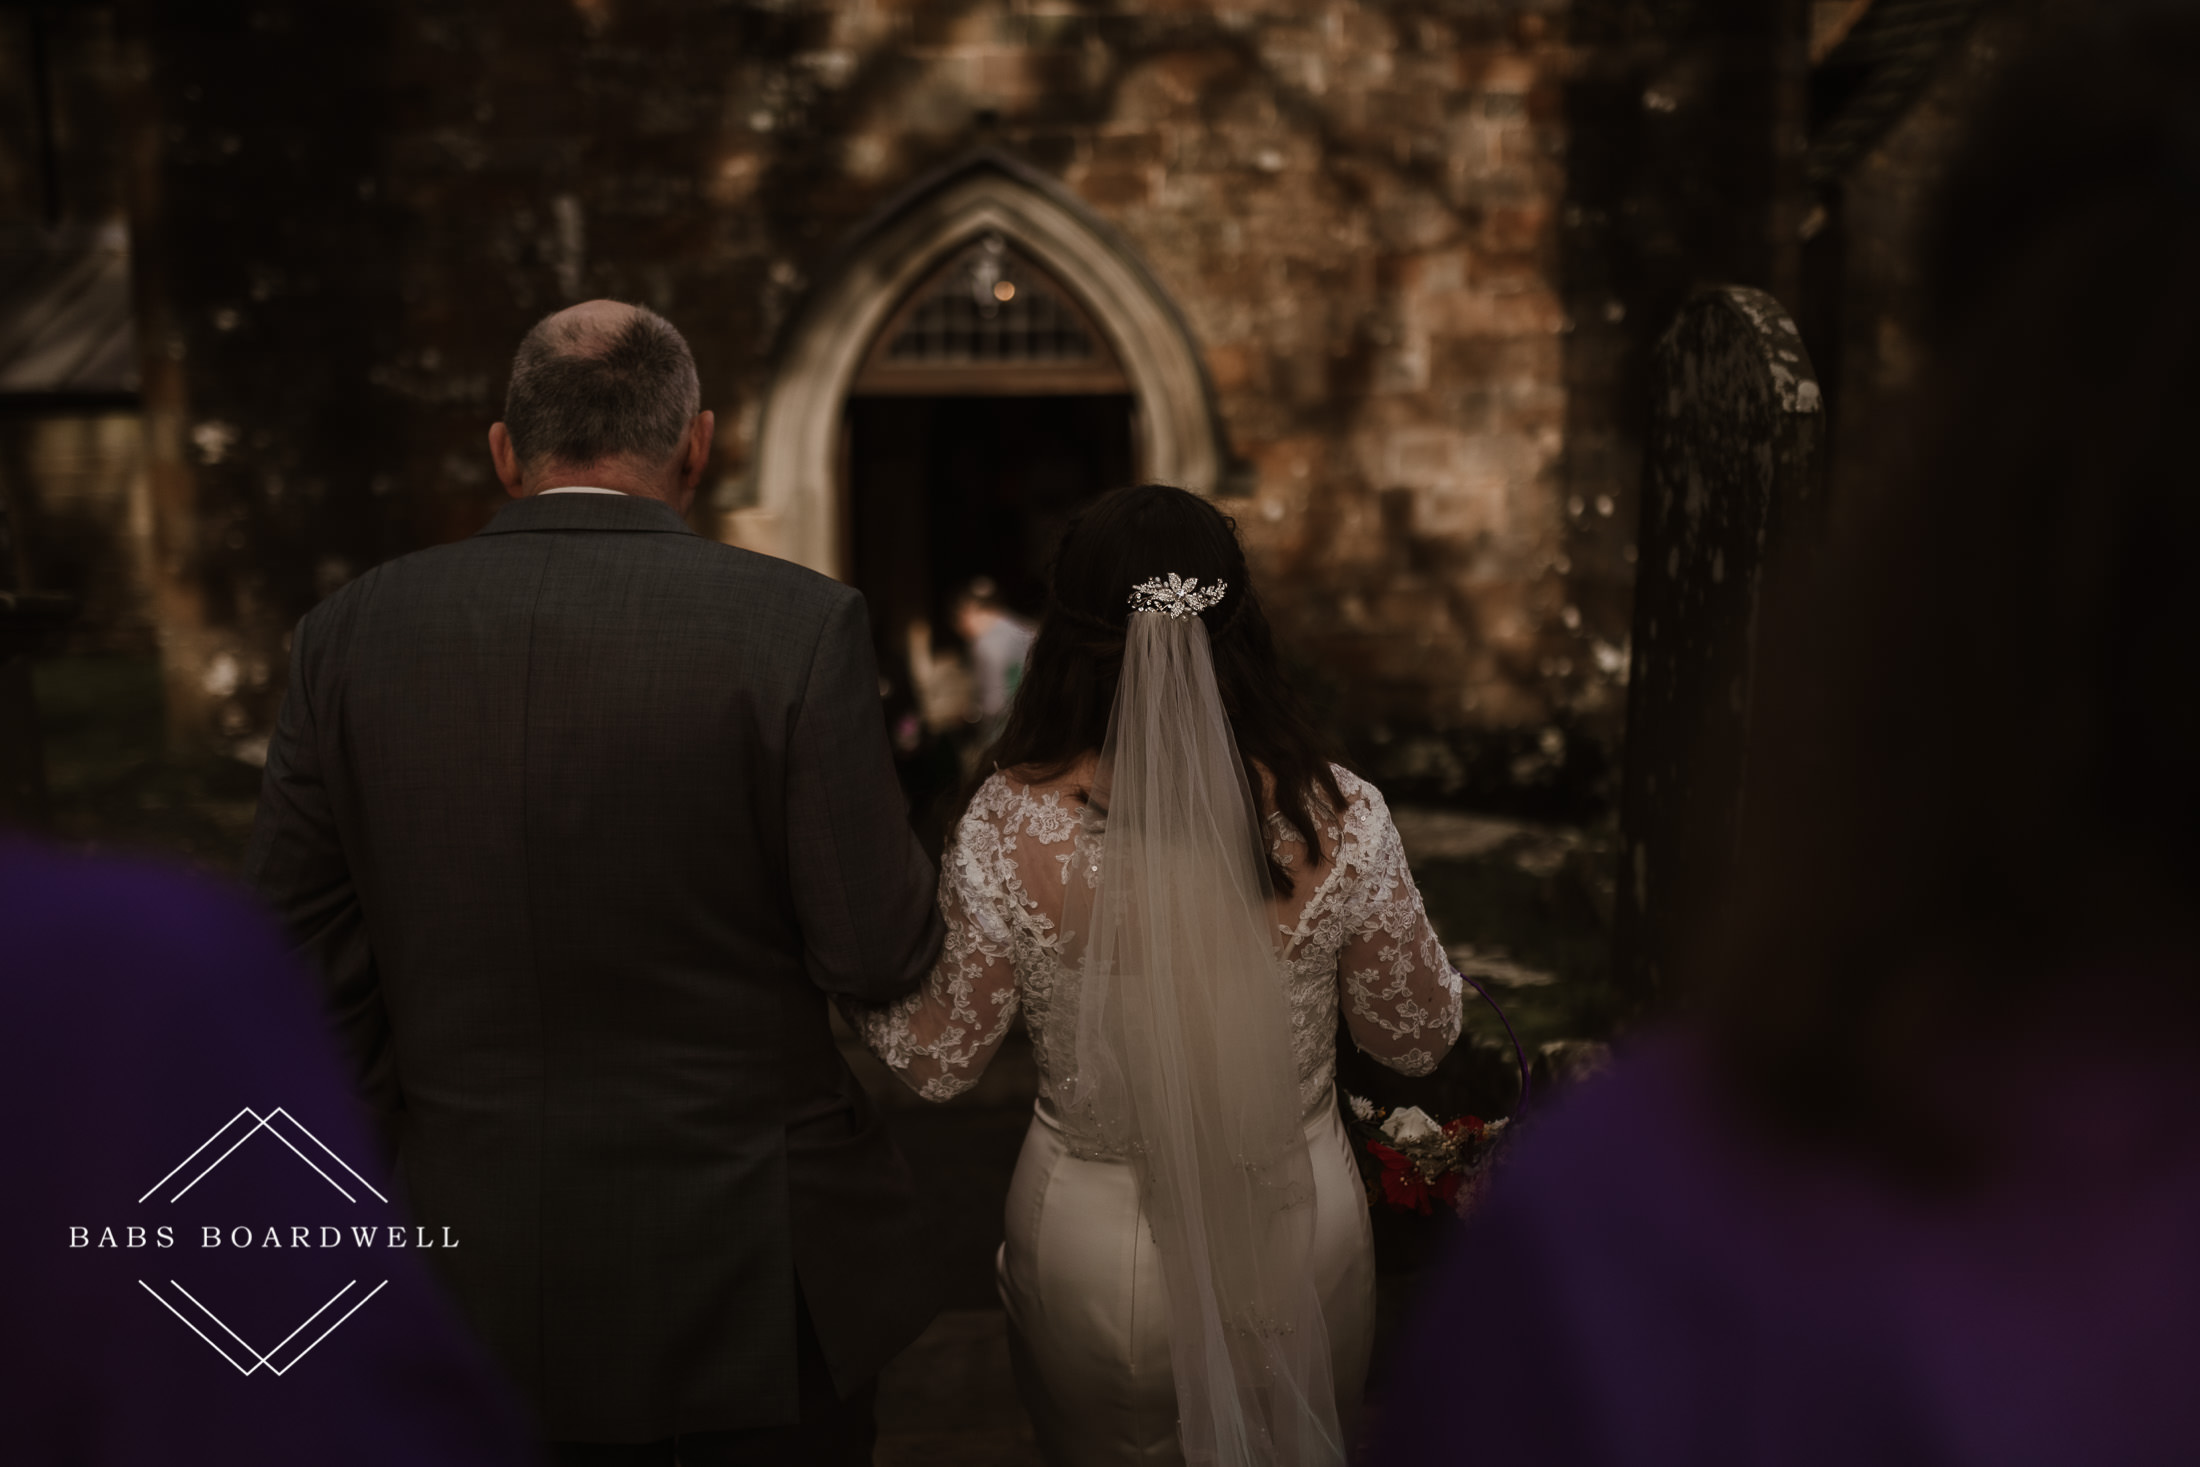 bride being walked into church on the arm of her father at St. Briavels Church